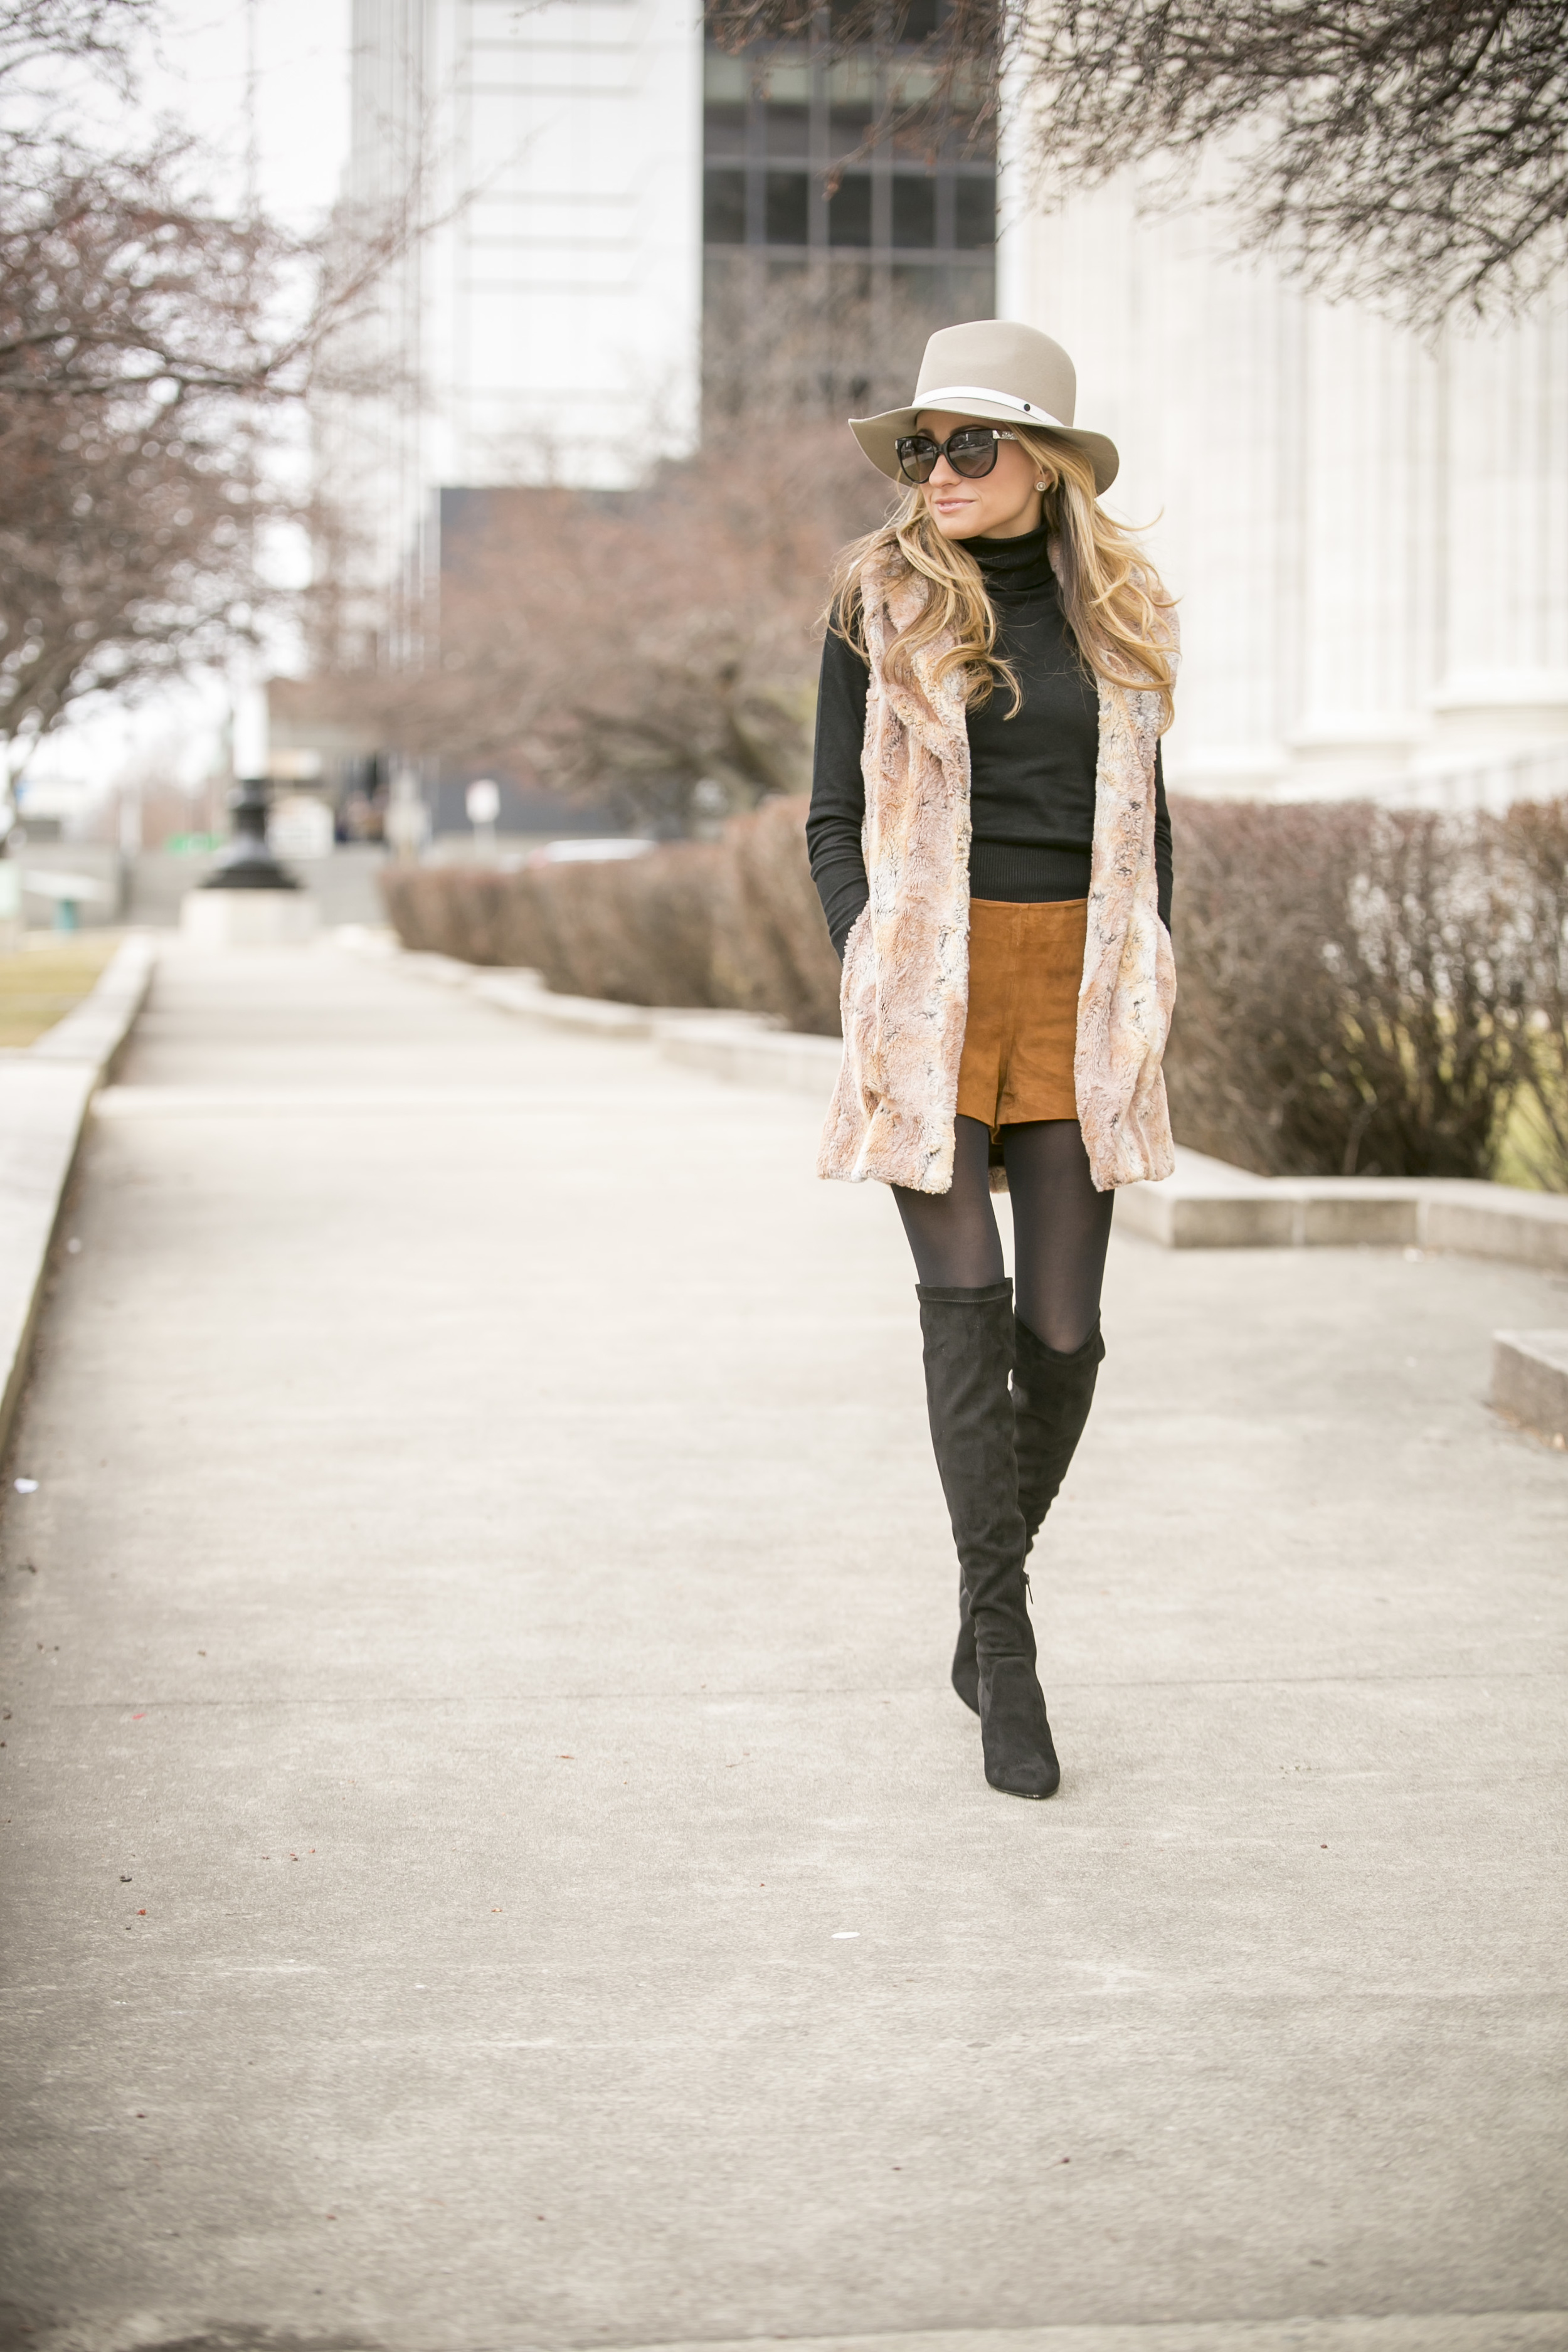 outfit by fashion blogger north of manhattan wearing alice and olivia, rag and bone, and joie